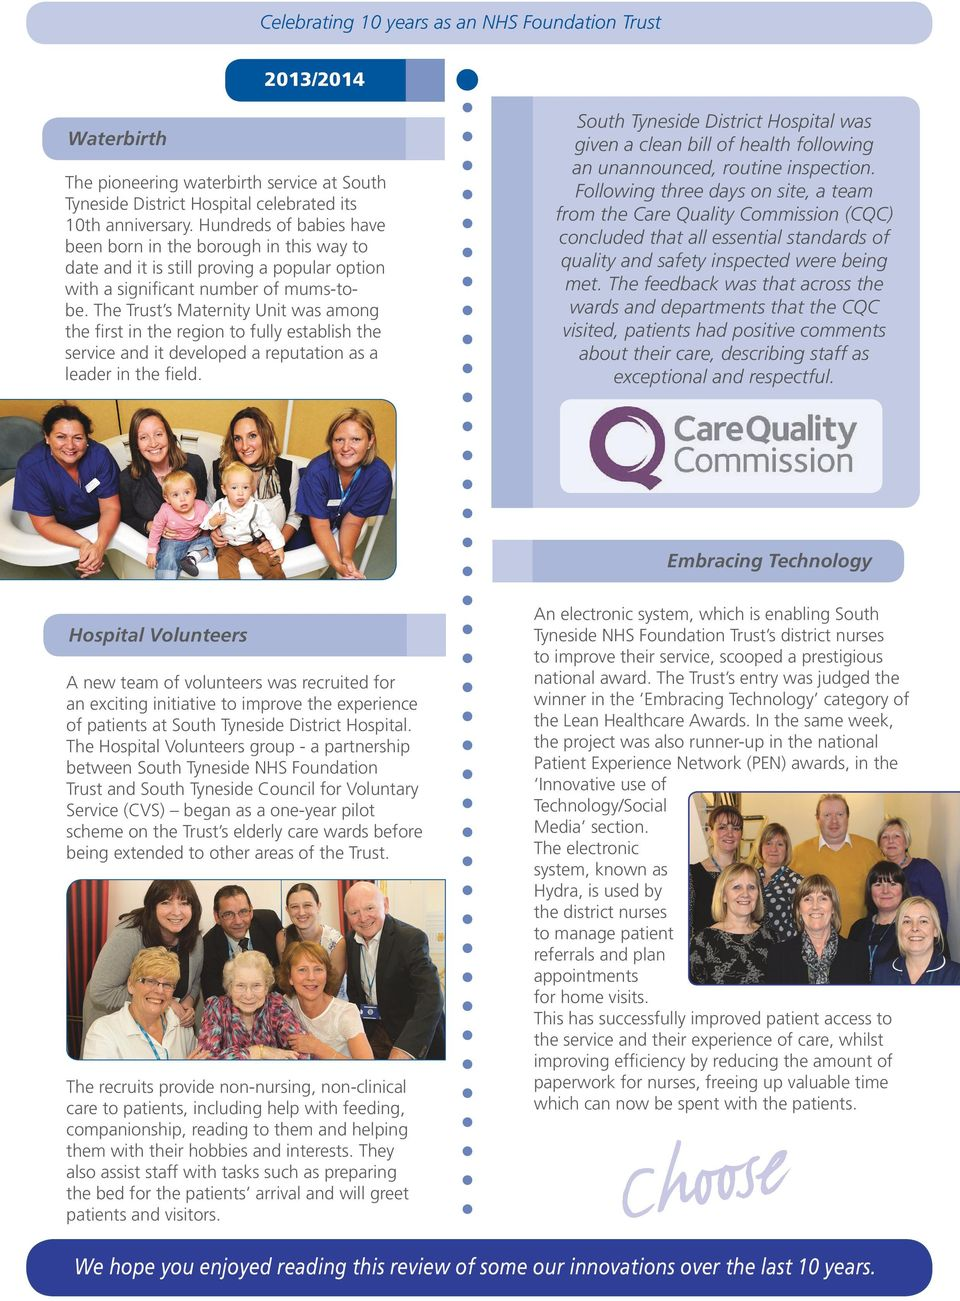 The Trust s Maternity Unit was among the first in the region to fully establish the service and it developed a reputation as a leader in the field.